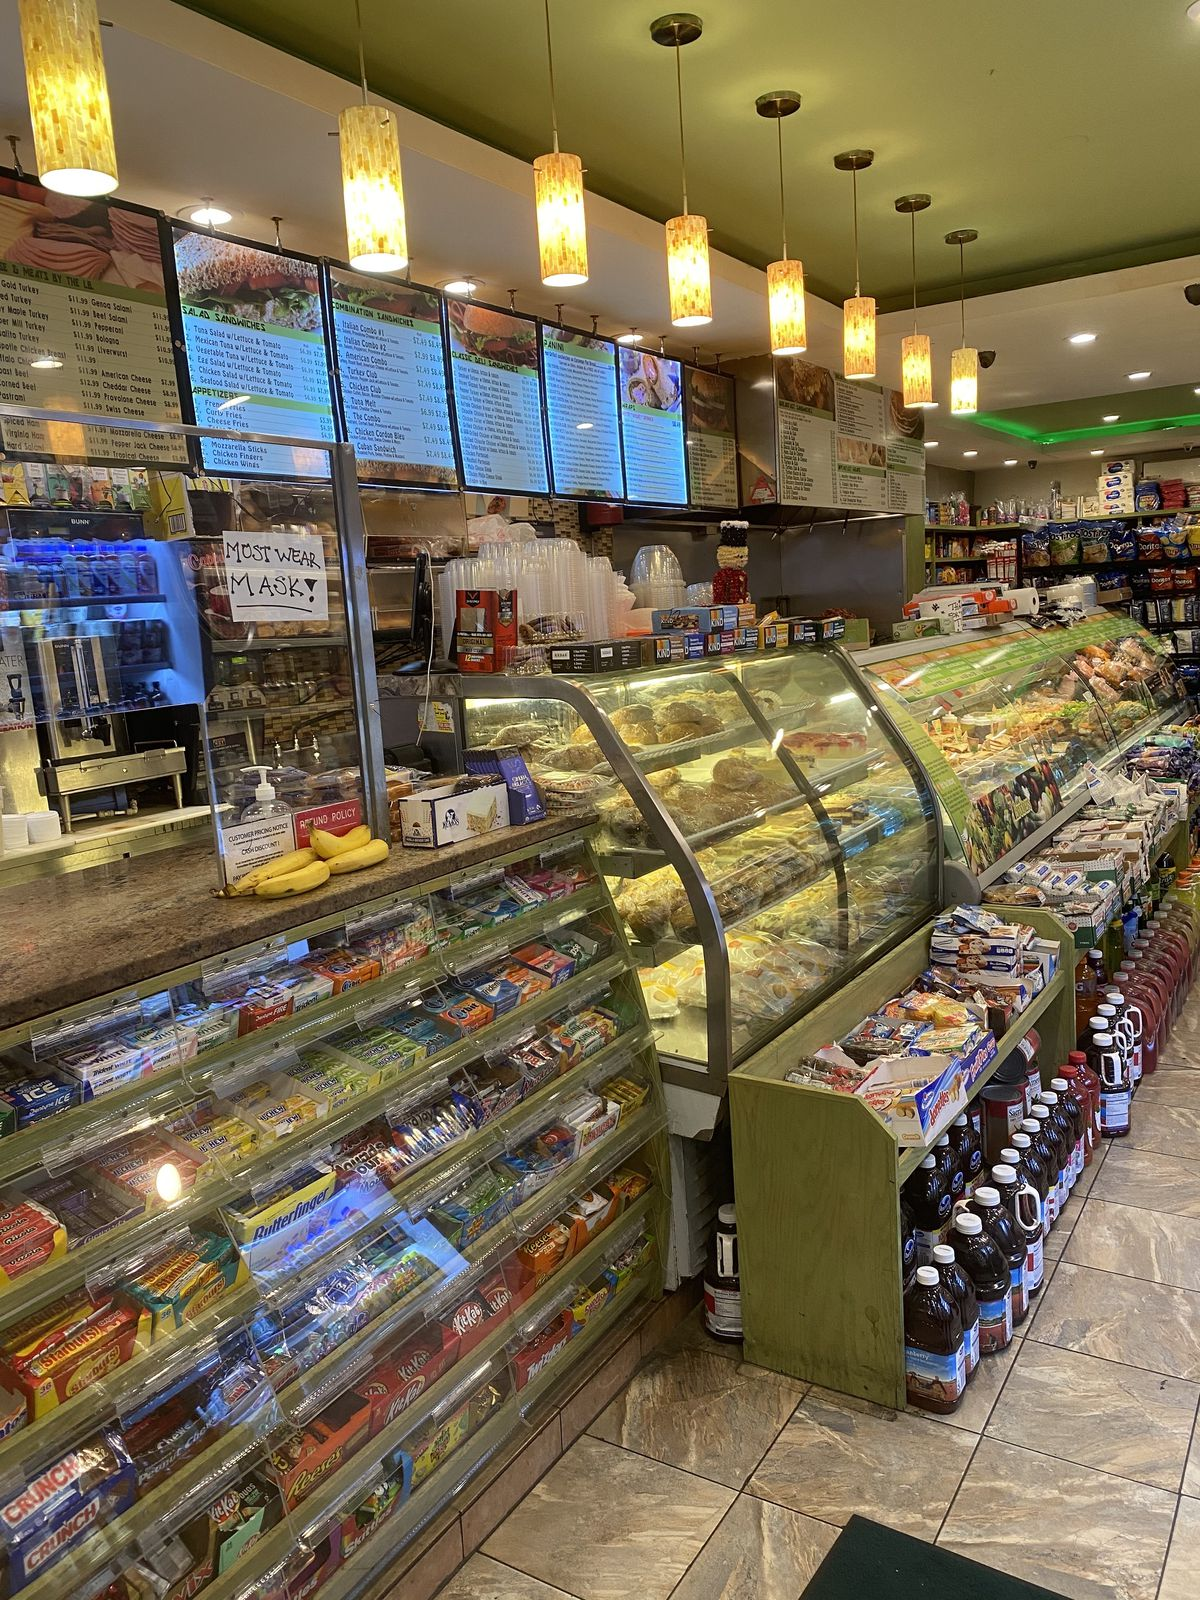 A stocked deli counter with a green ceiling above and yellow lights hanging above the counter